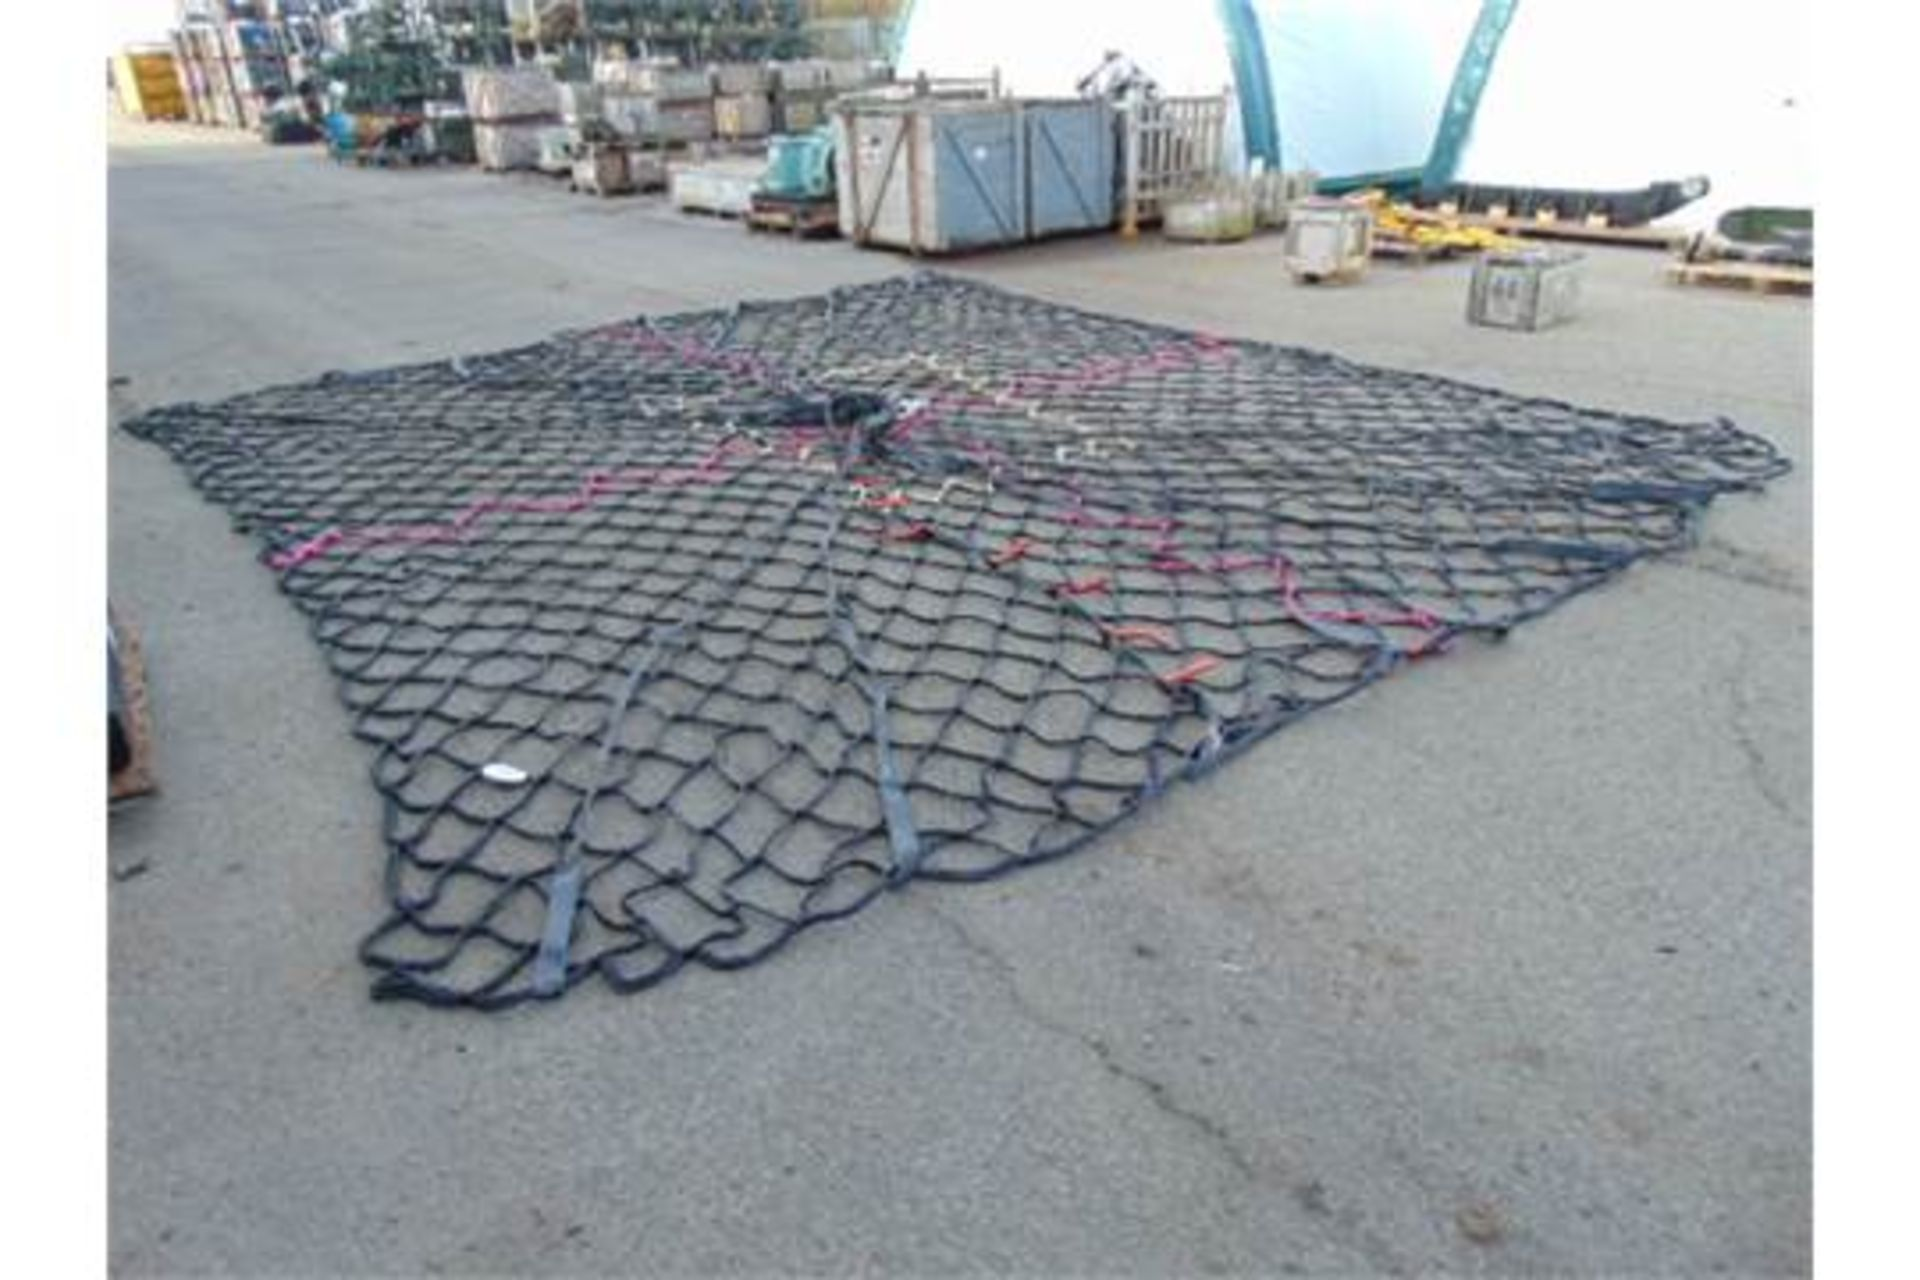 Lot 26849 - 5600Kg Helicopter Cargo Net